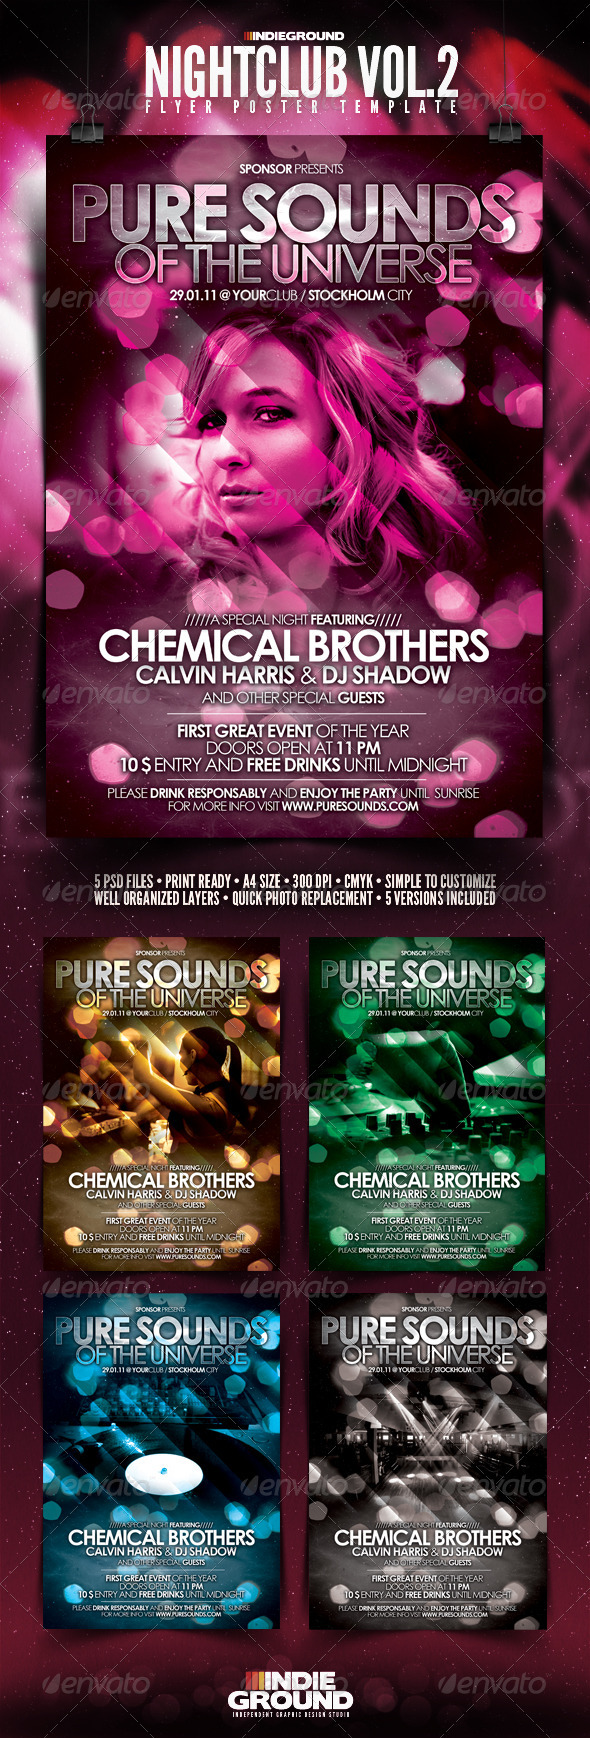 Nightclub Flyer/Poster Vol. 2 - Clubs & Parties Events